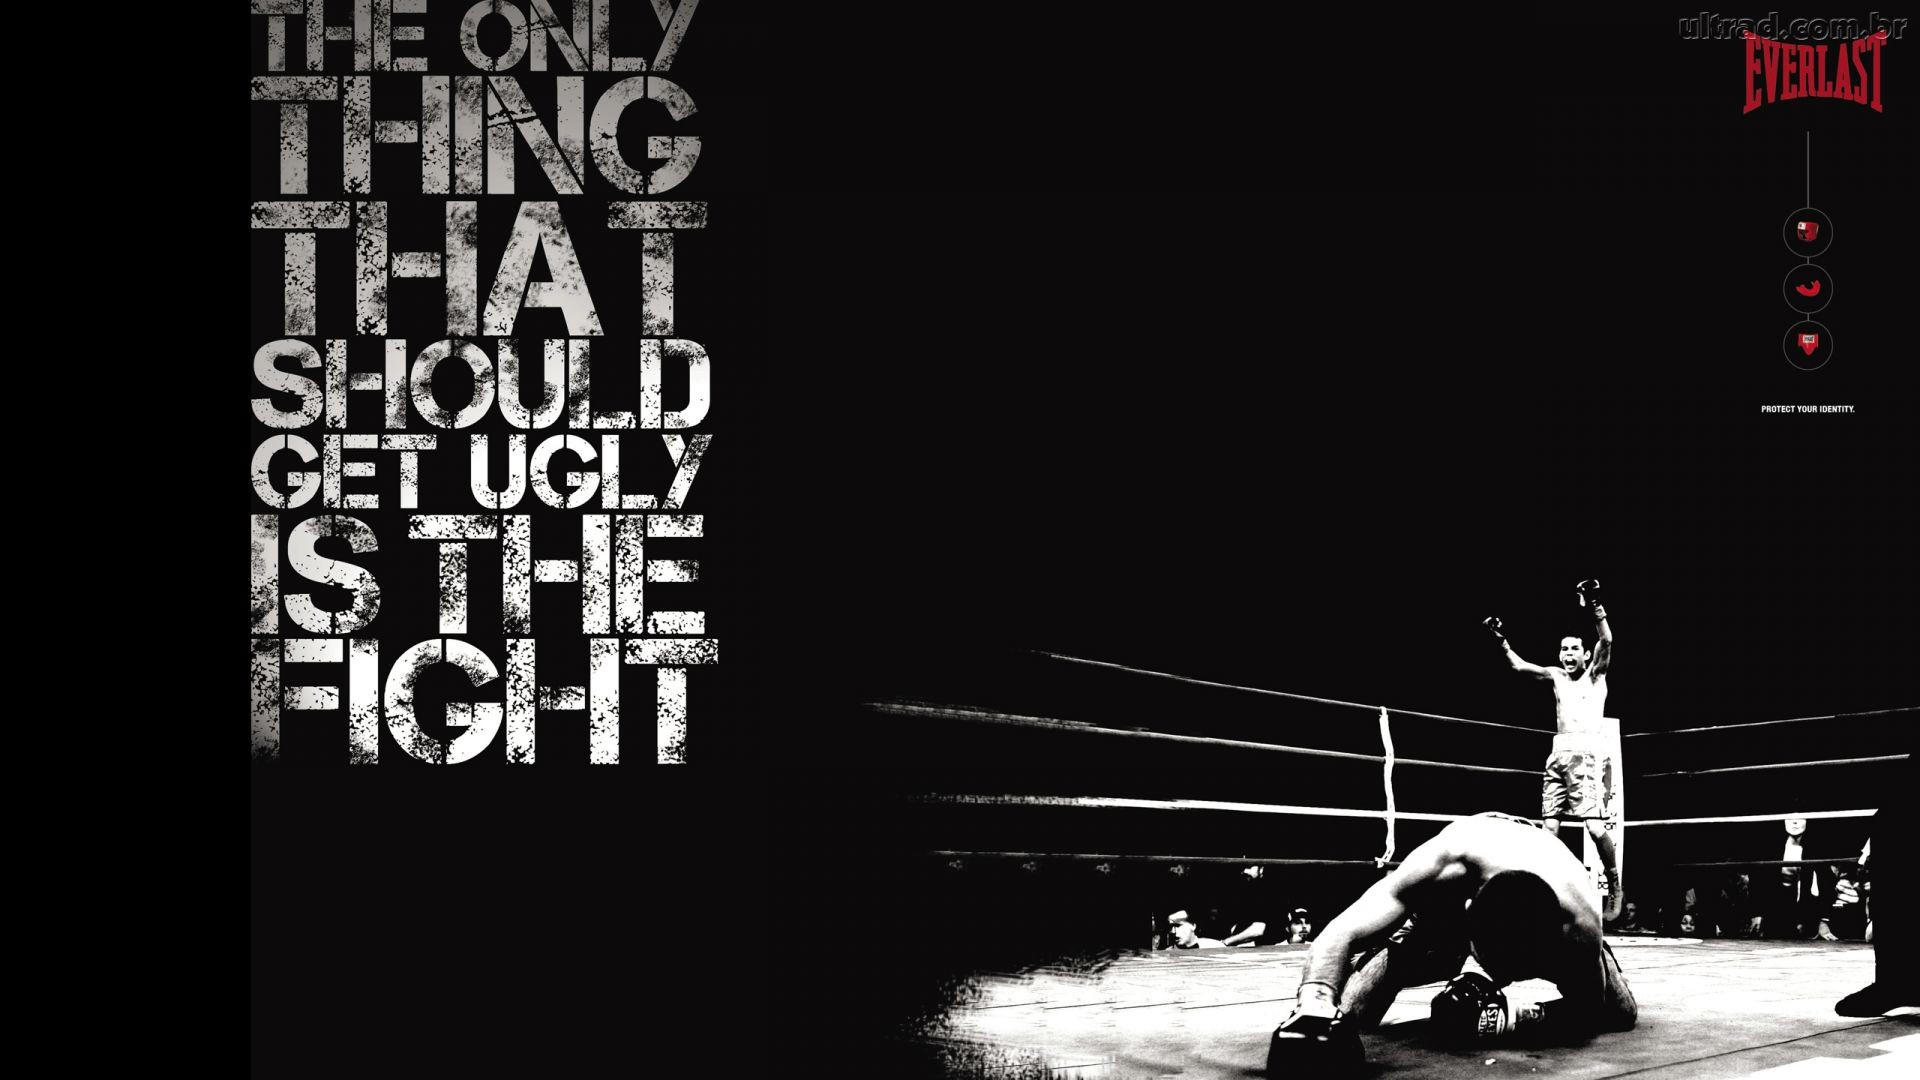 1920x1080 - Boxing Wallpapers 14